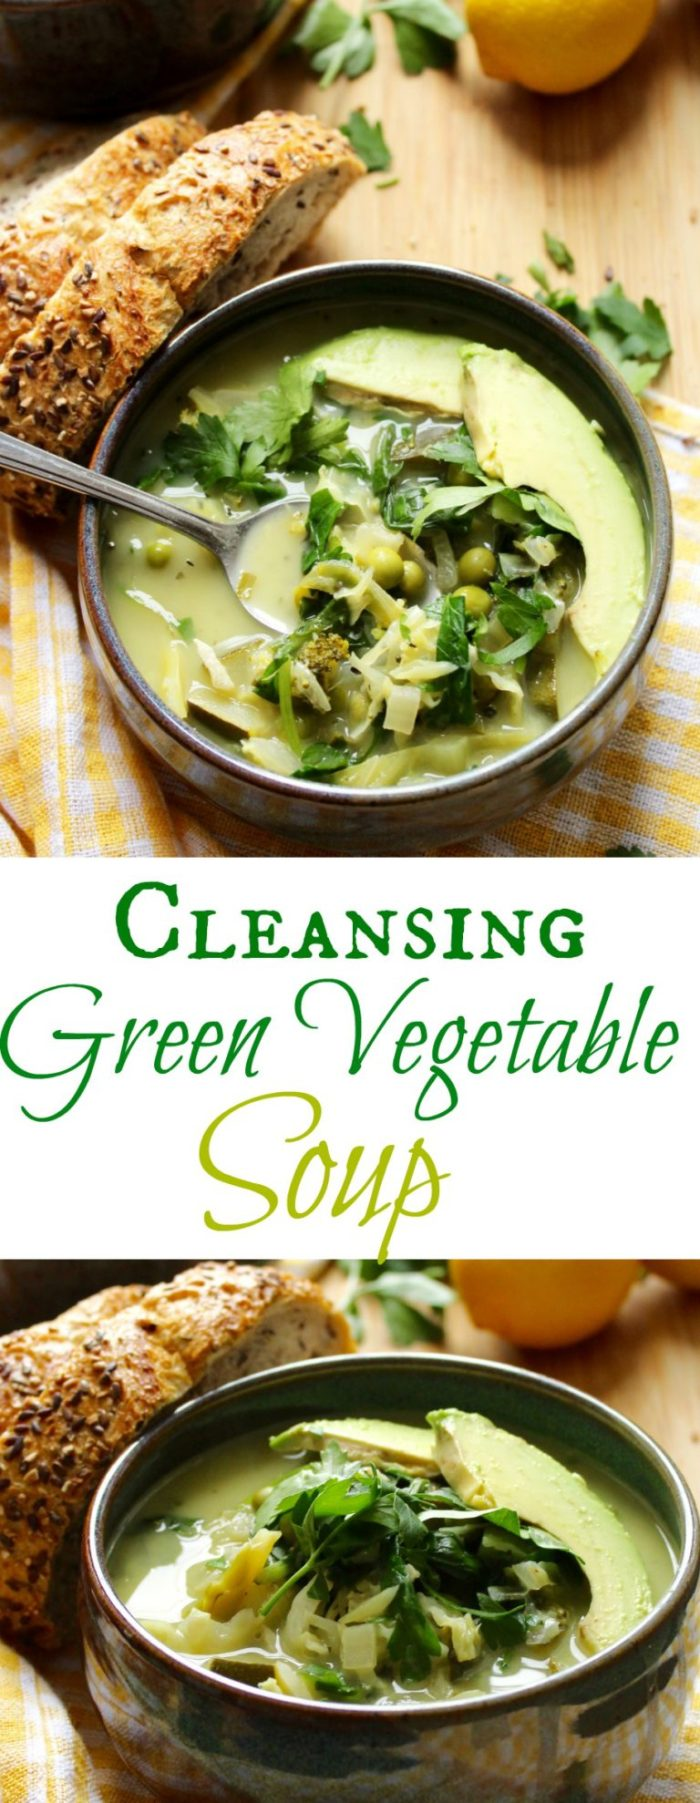 Cleansing Green Vegetable Soup